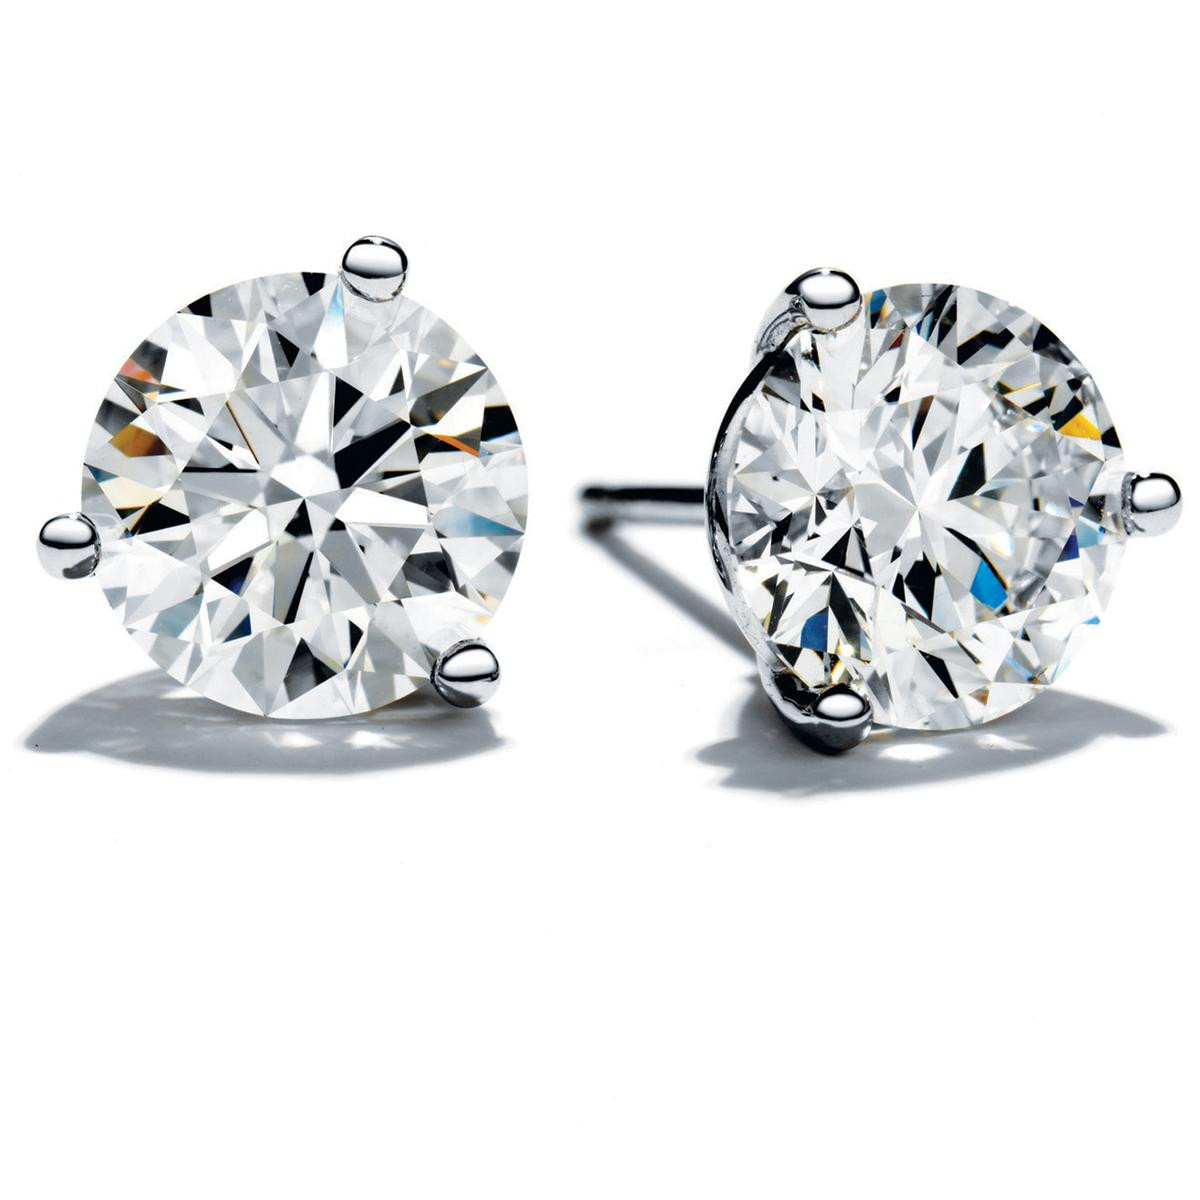 New Hearts On Fire® 1.01 CTW Diamond Stud Earrings